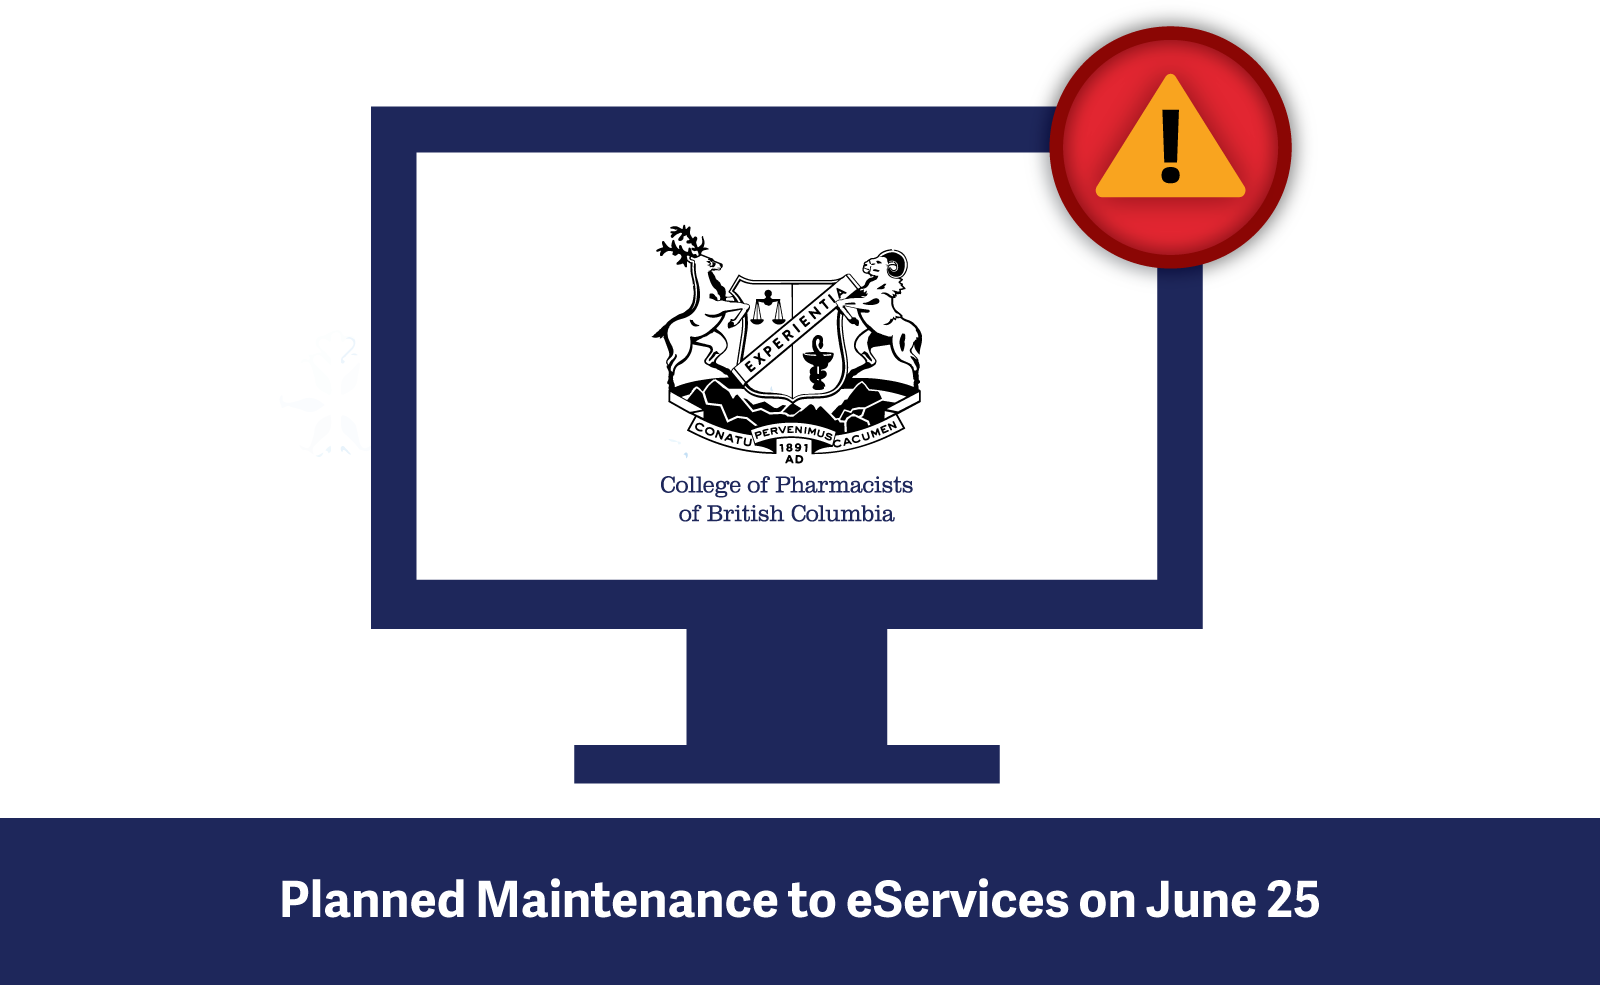 planned maintenance to eservices and related services on june 25